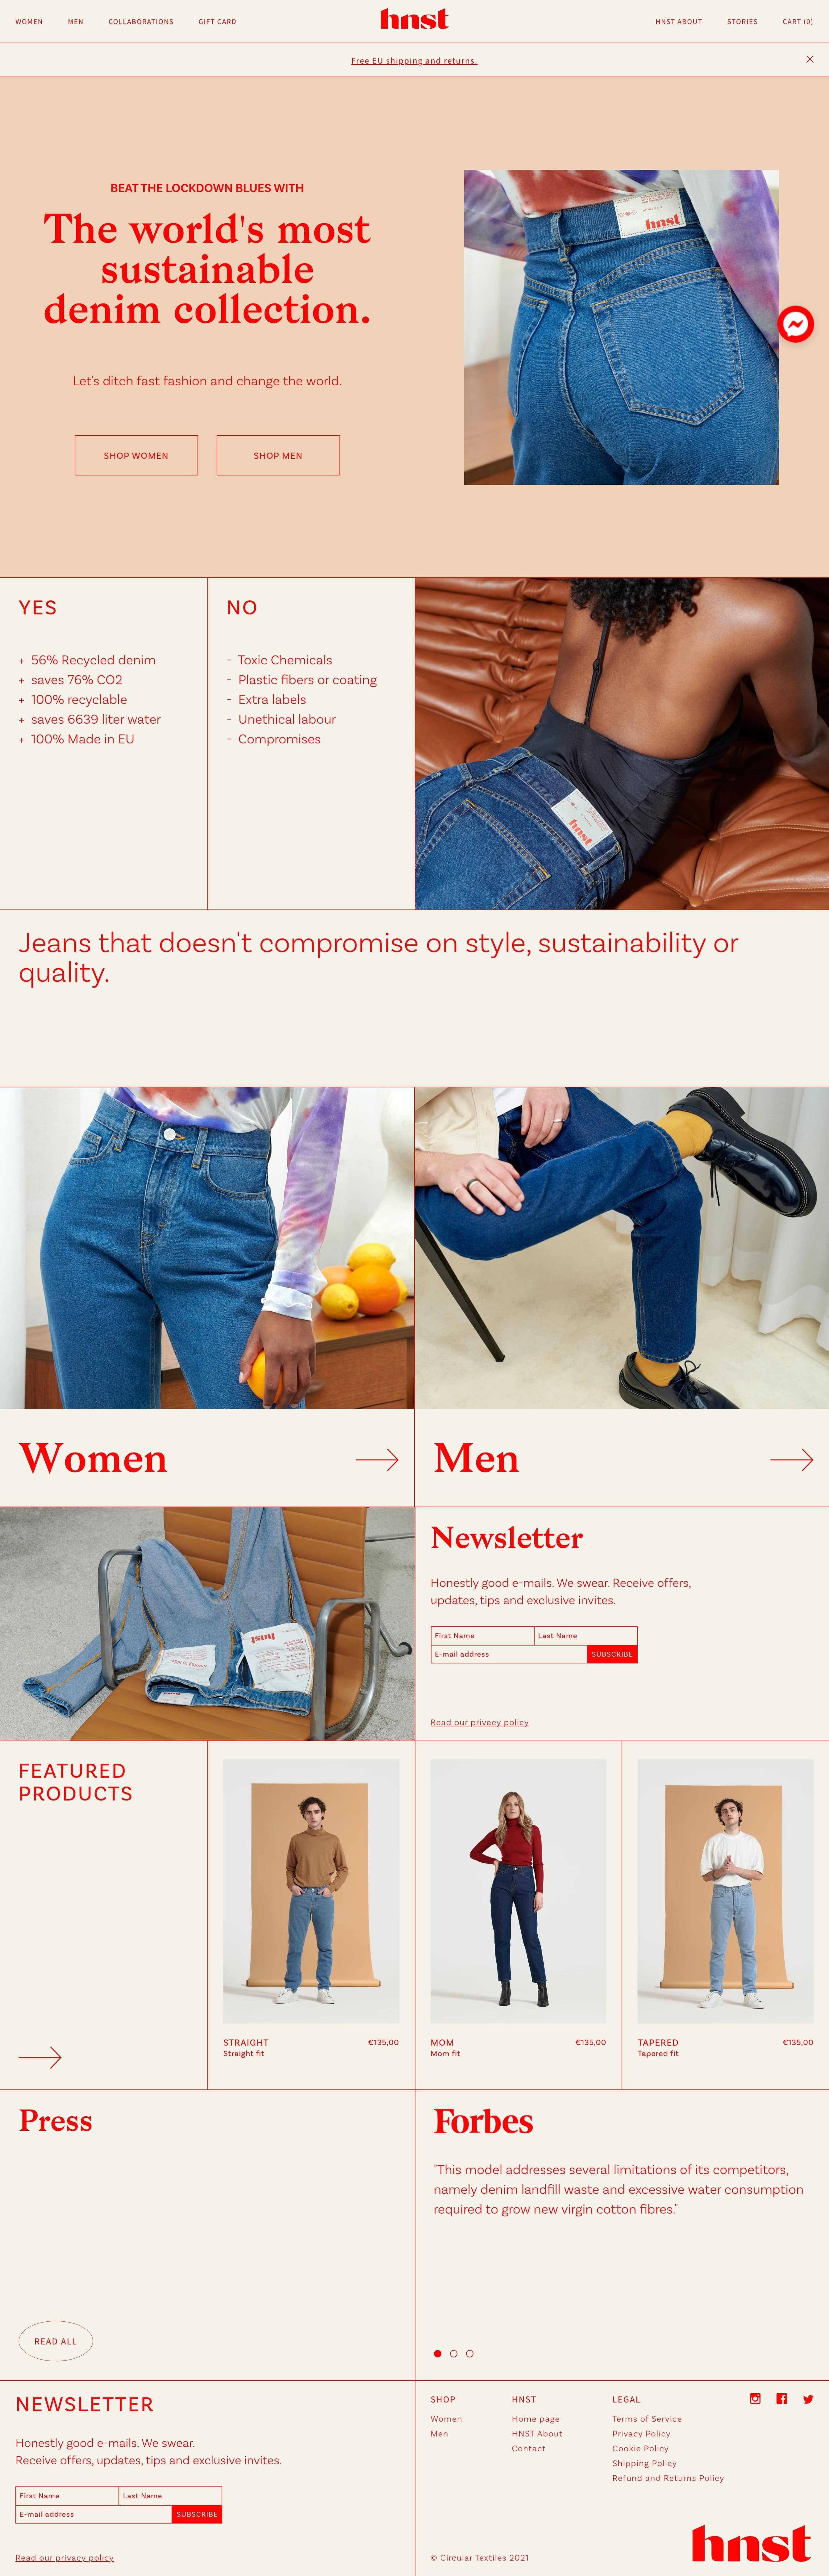 HNST Jeans homepage